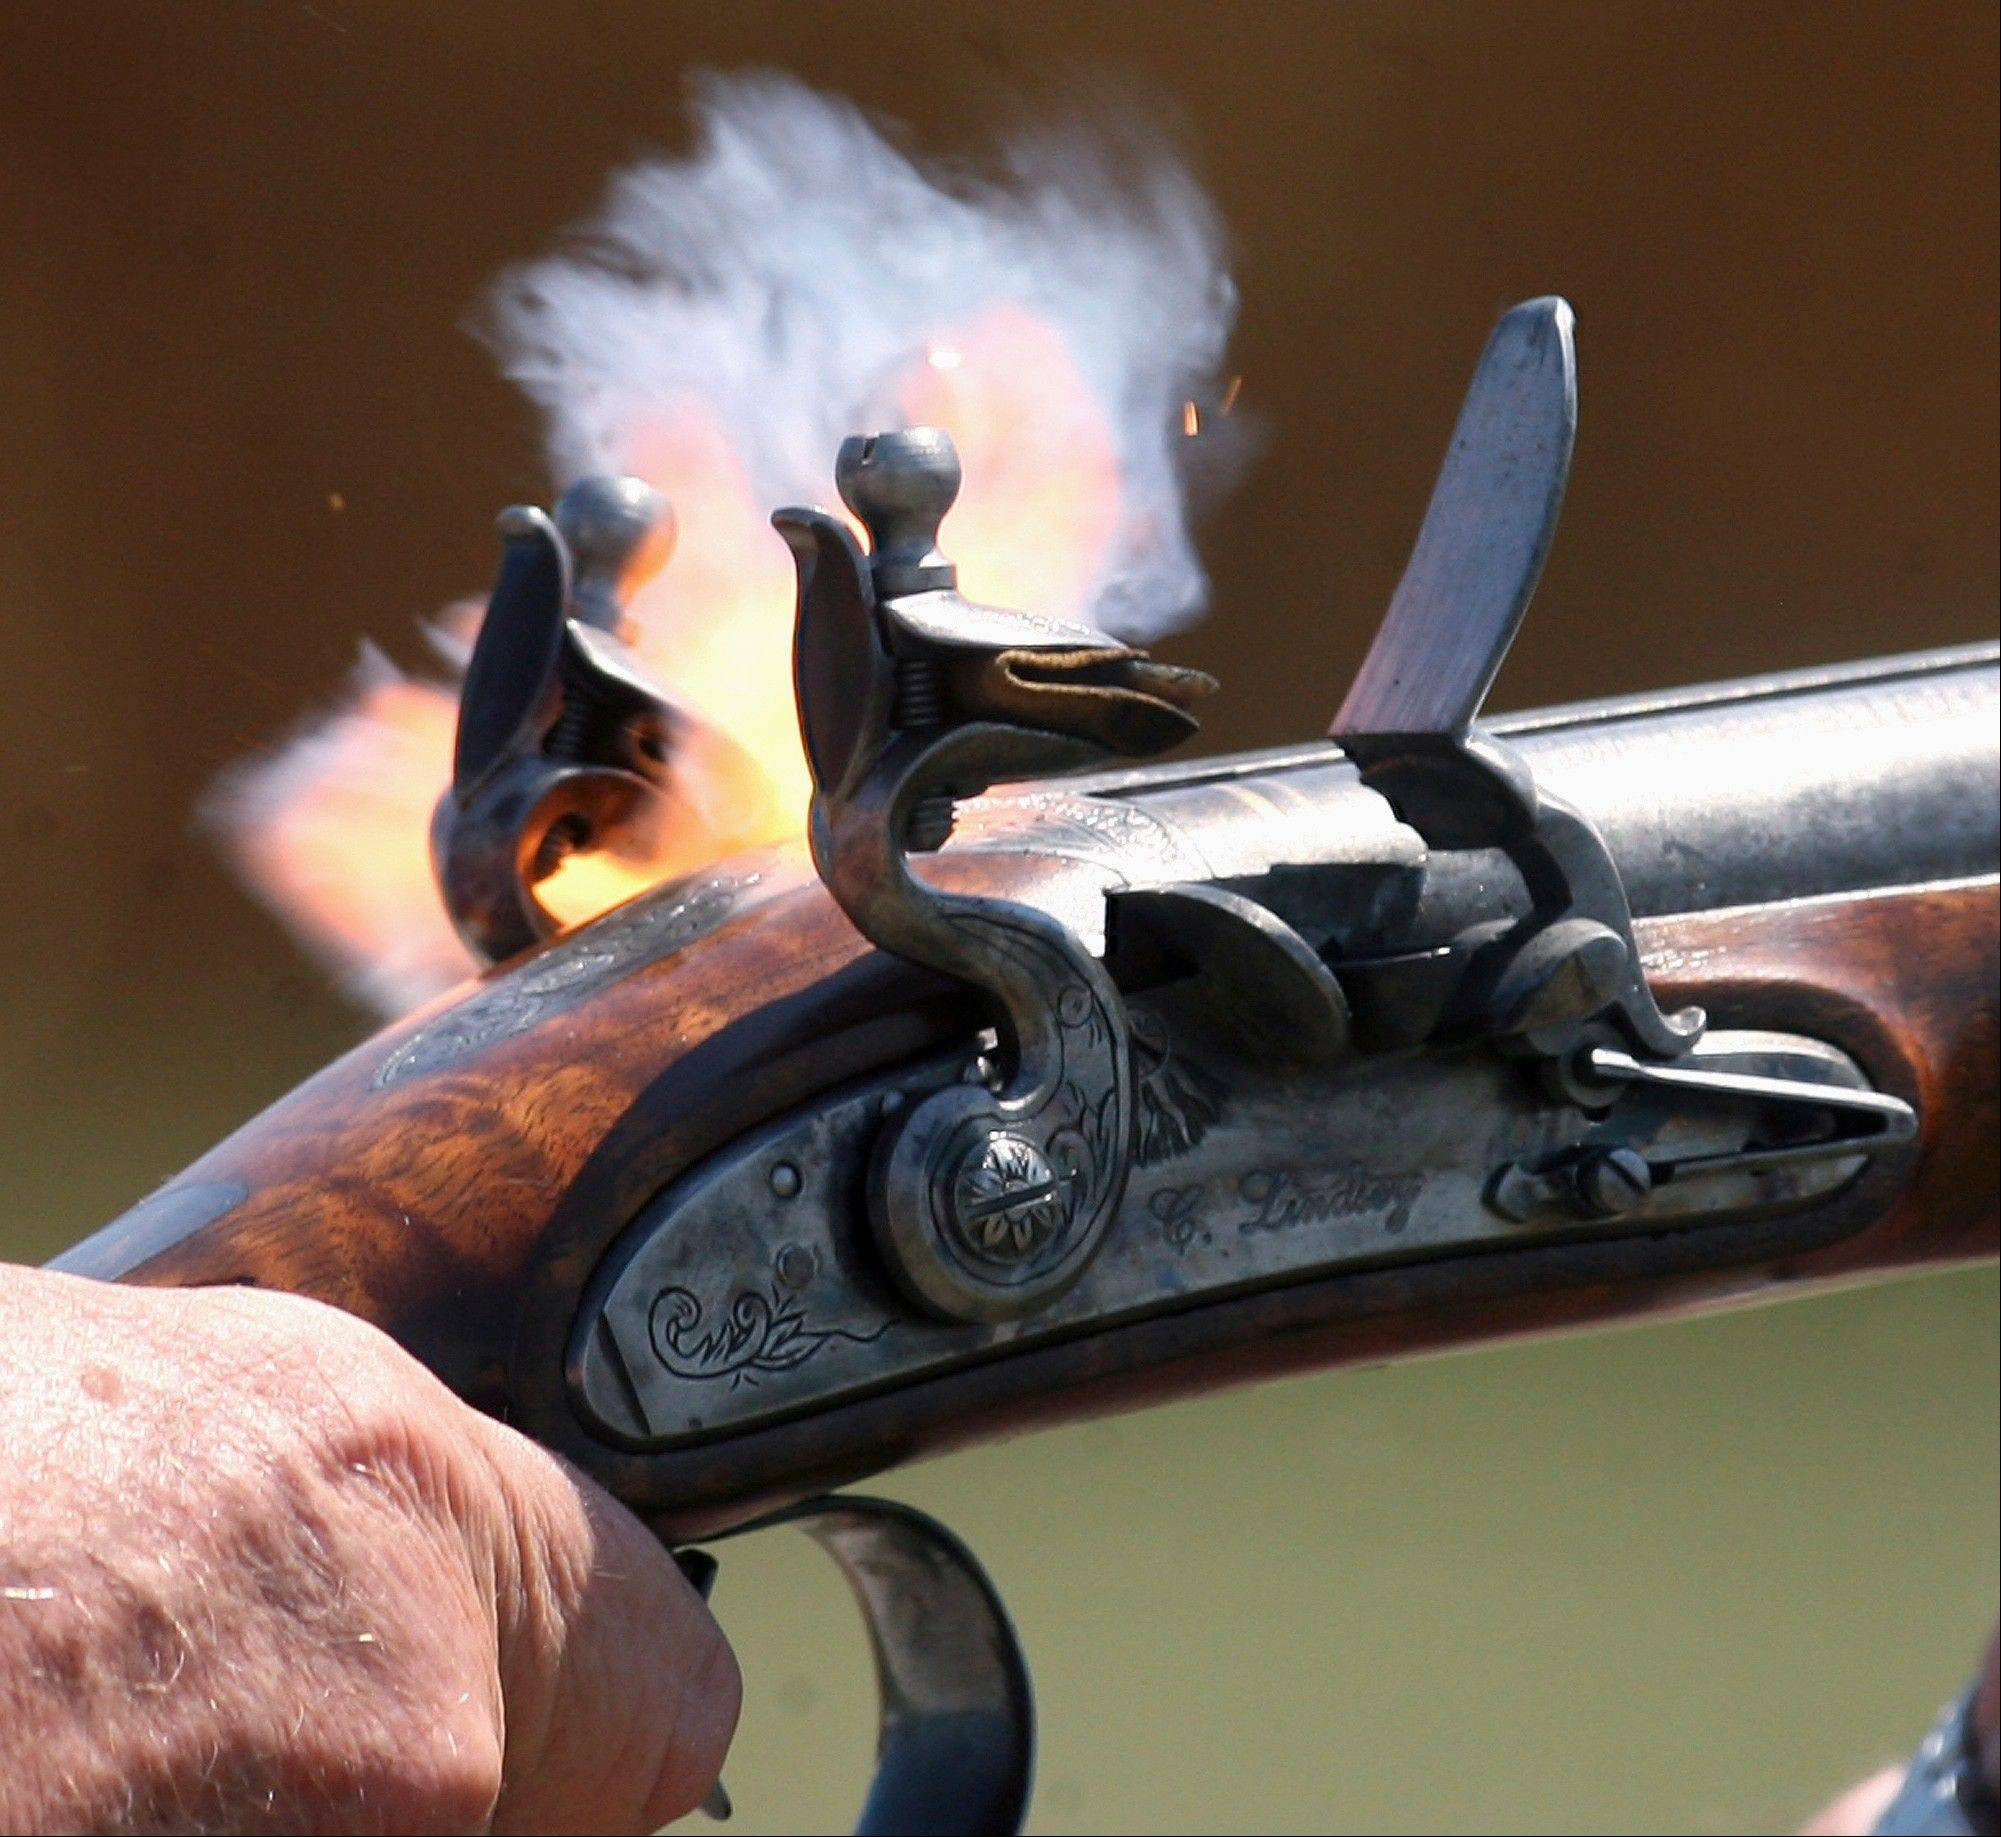 It all starts with a spark, as one barrel of a double-barreled shotgun made by Chuck Lindsey fires during a trapshooting session in rural southwest Logan County. Lindsey builds muzzleloading firearms, especially flintlocks that were in use in the late 18th and early 19th centuries.